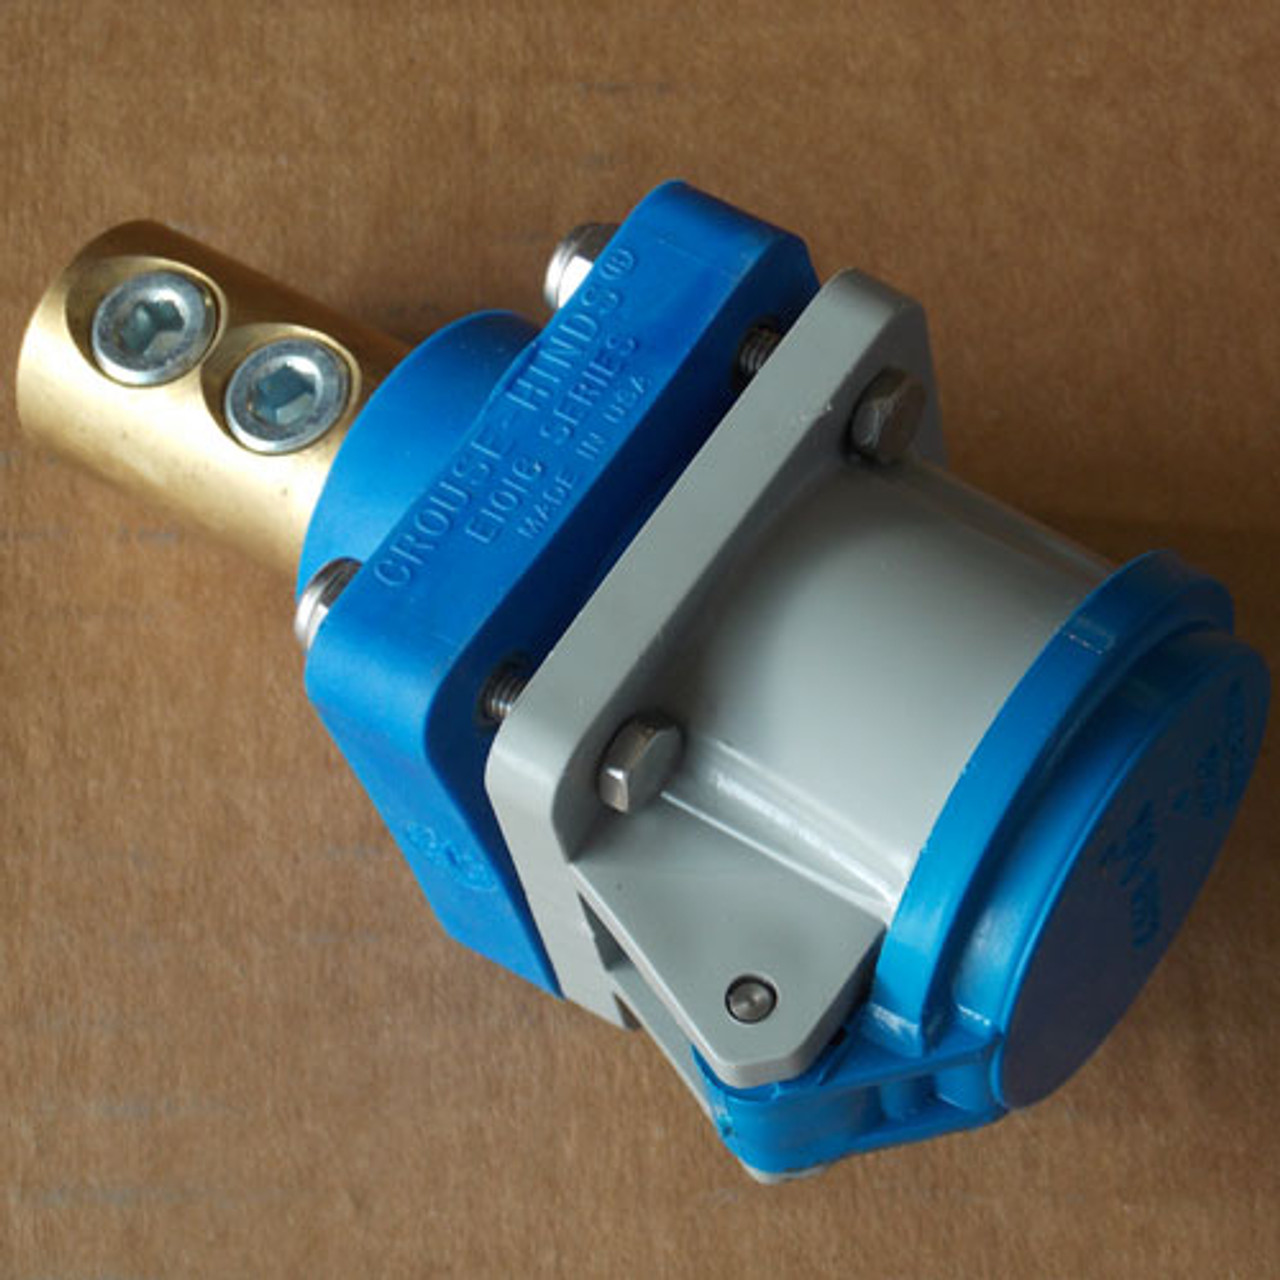 Cooper Crouse Hinds Cam-Lok E1016 Series Connector 400A 600V Blue - New